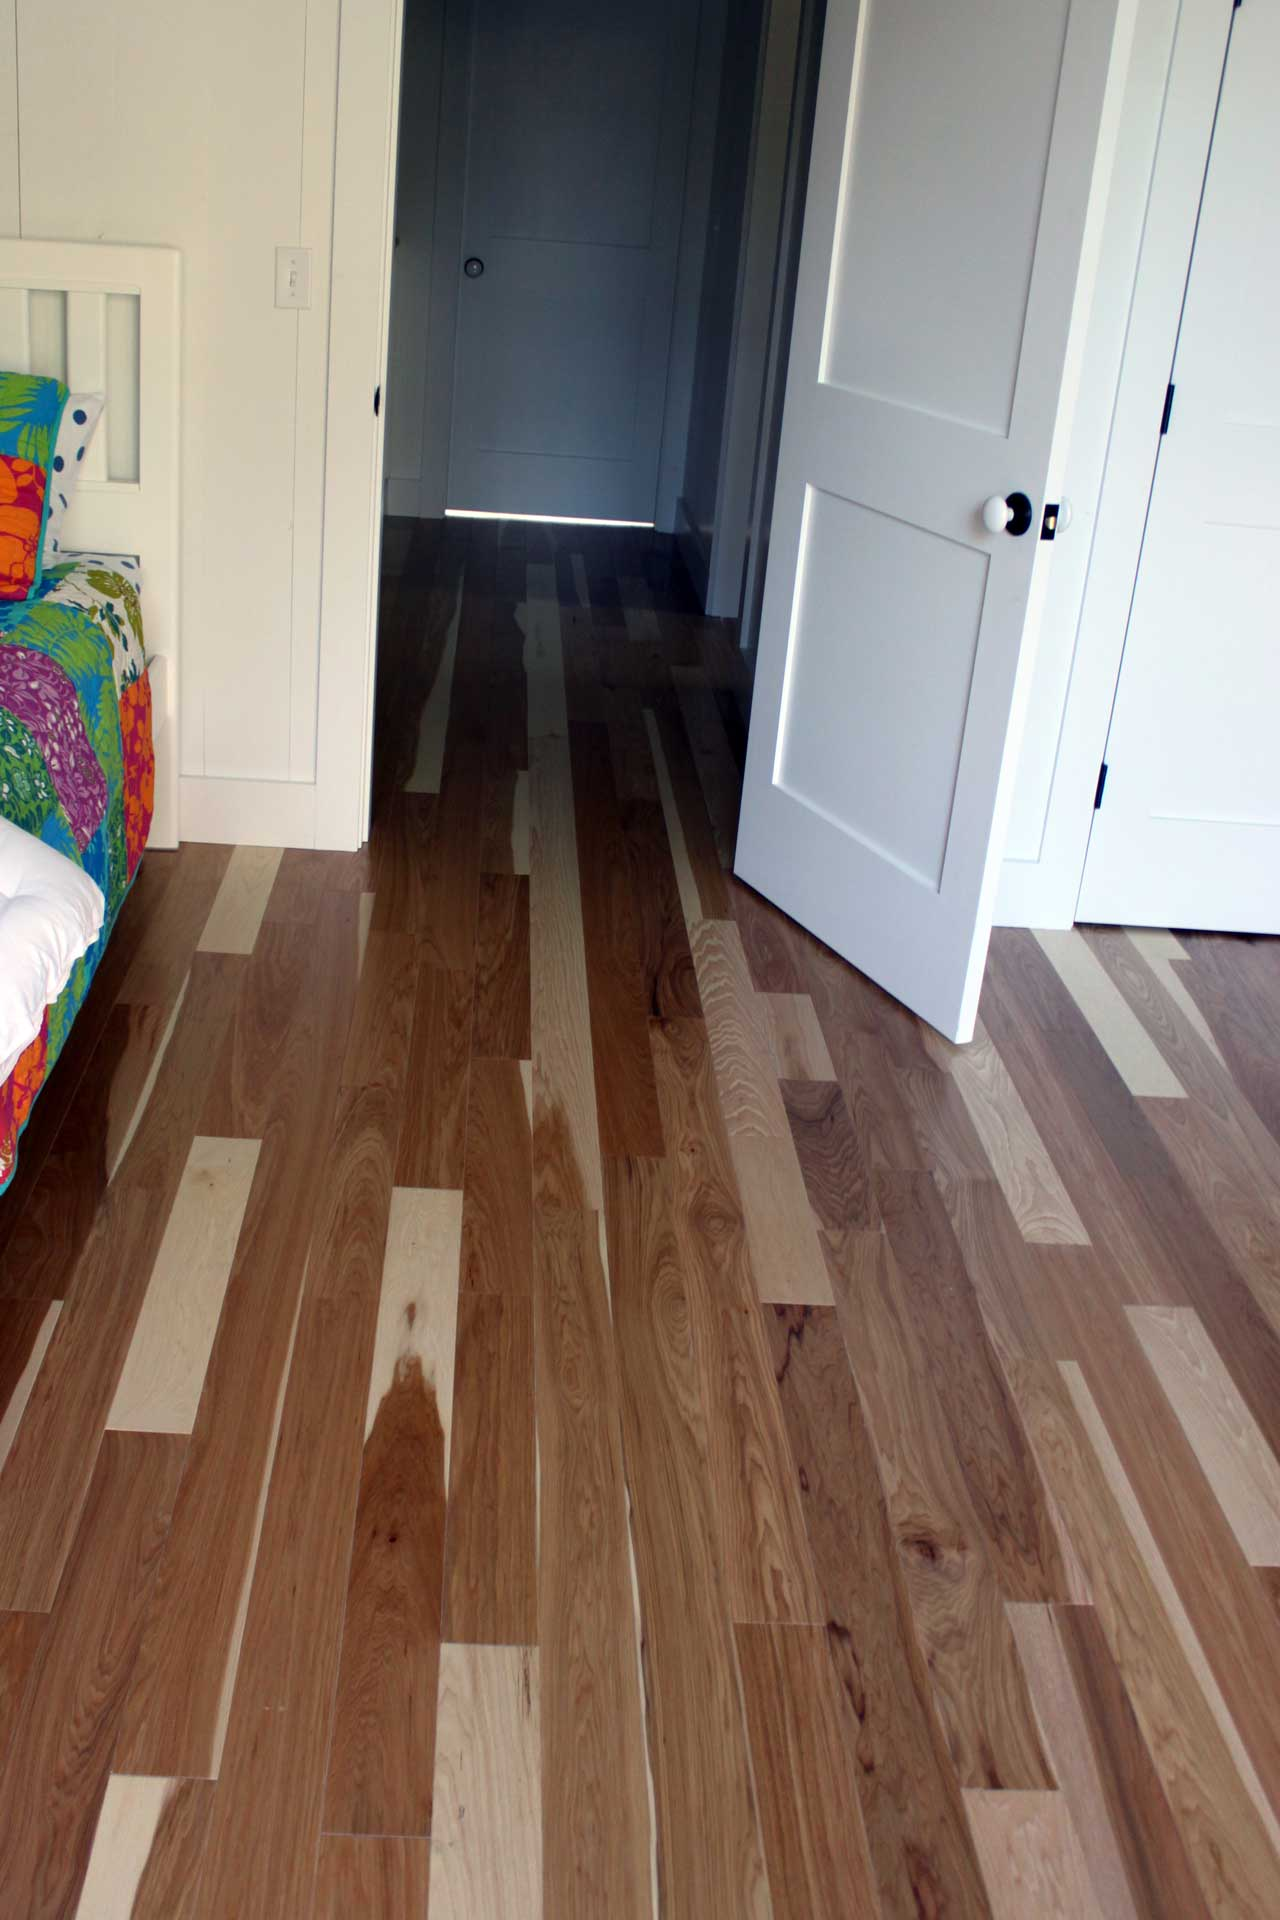 Hardwood-Floors-Hickory-floors-2-Massachusetts